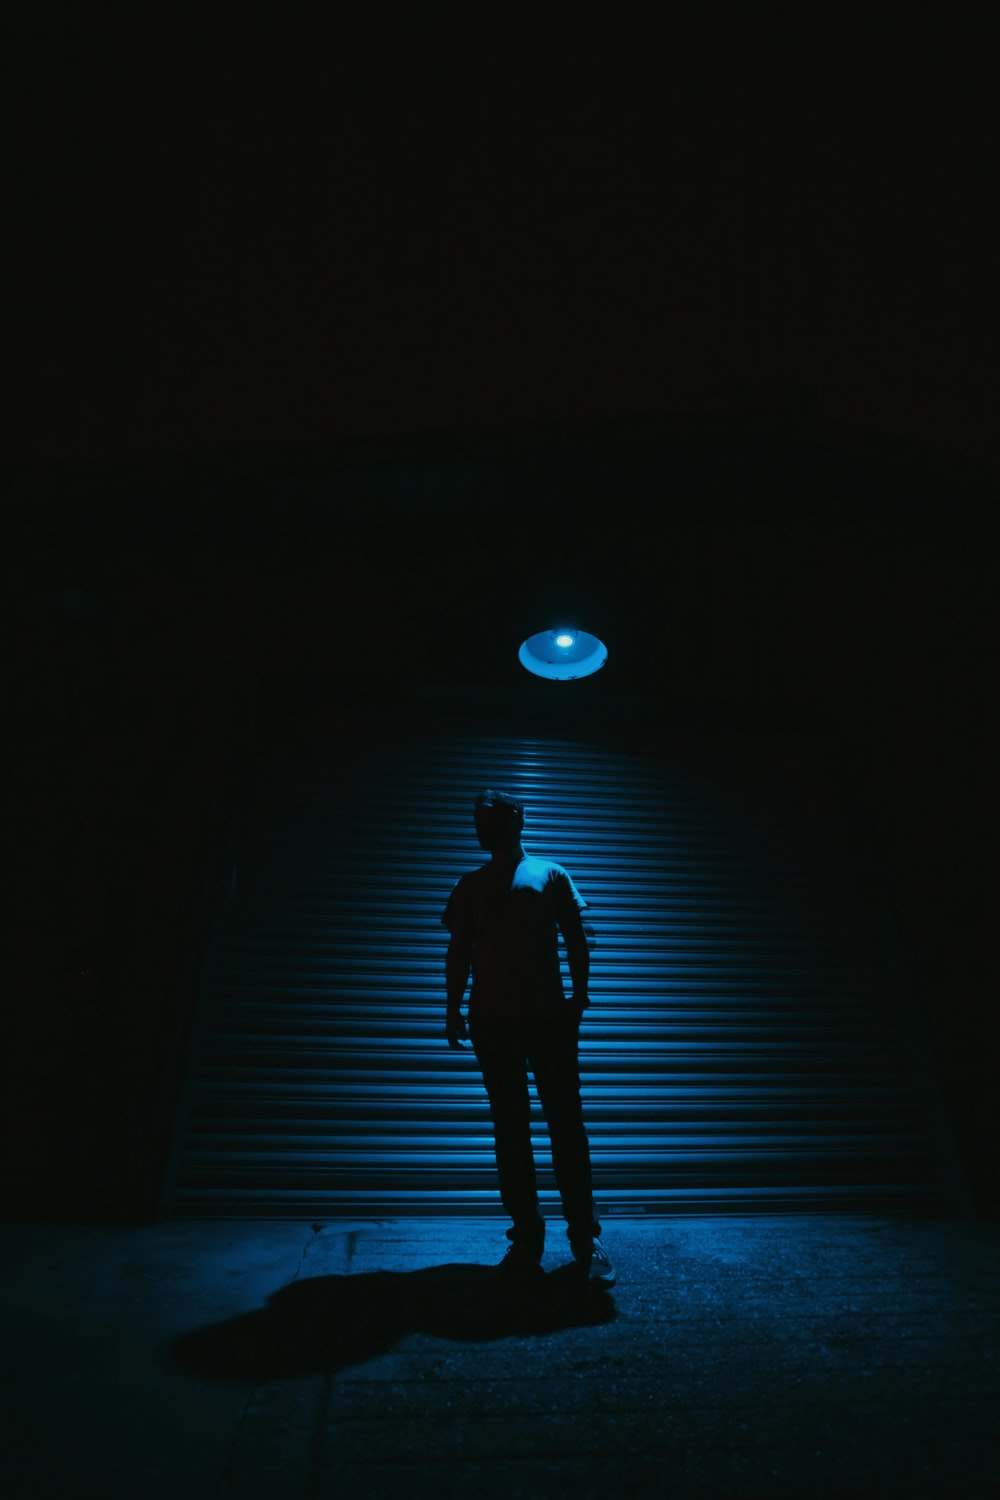 person standing near roll-up door with light turned-on